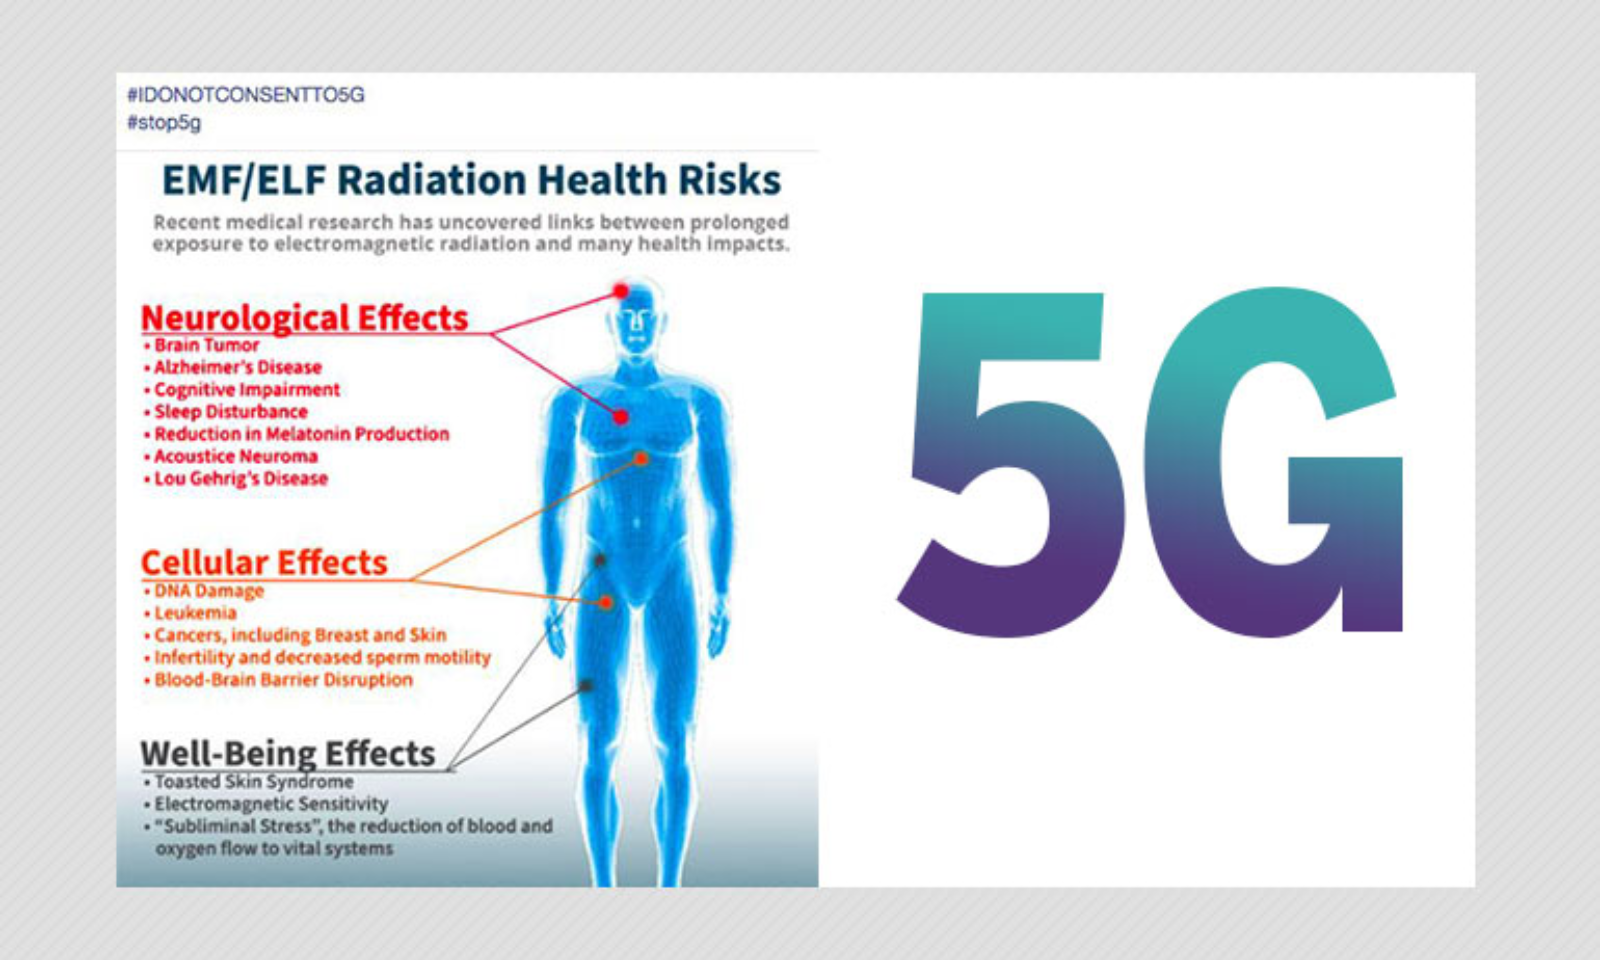 Does 5G Radiation Cause COVID-19 And Other Diseases? A Fact Check